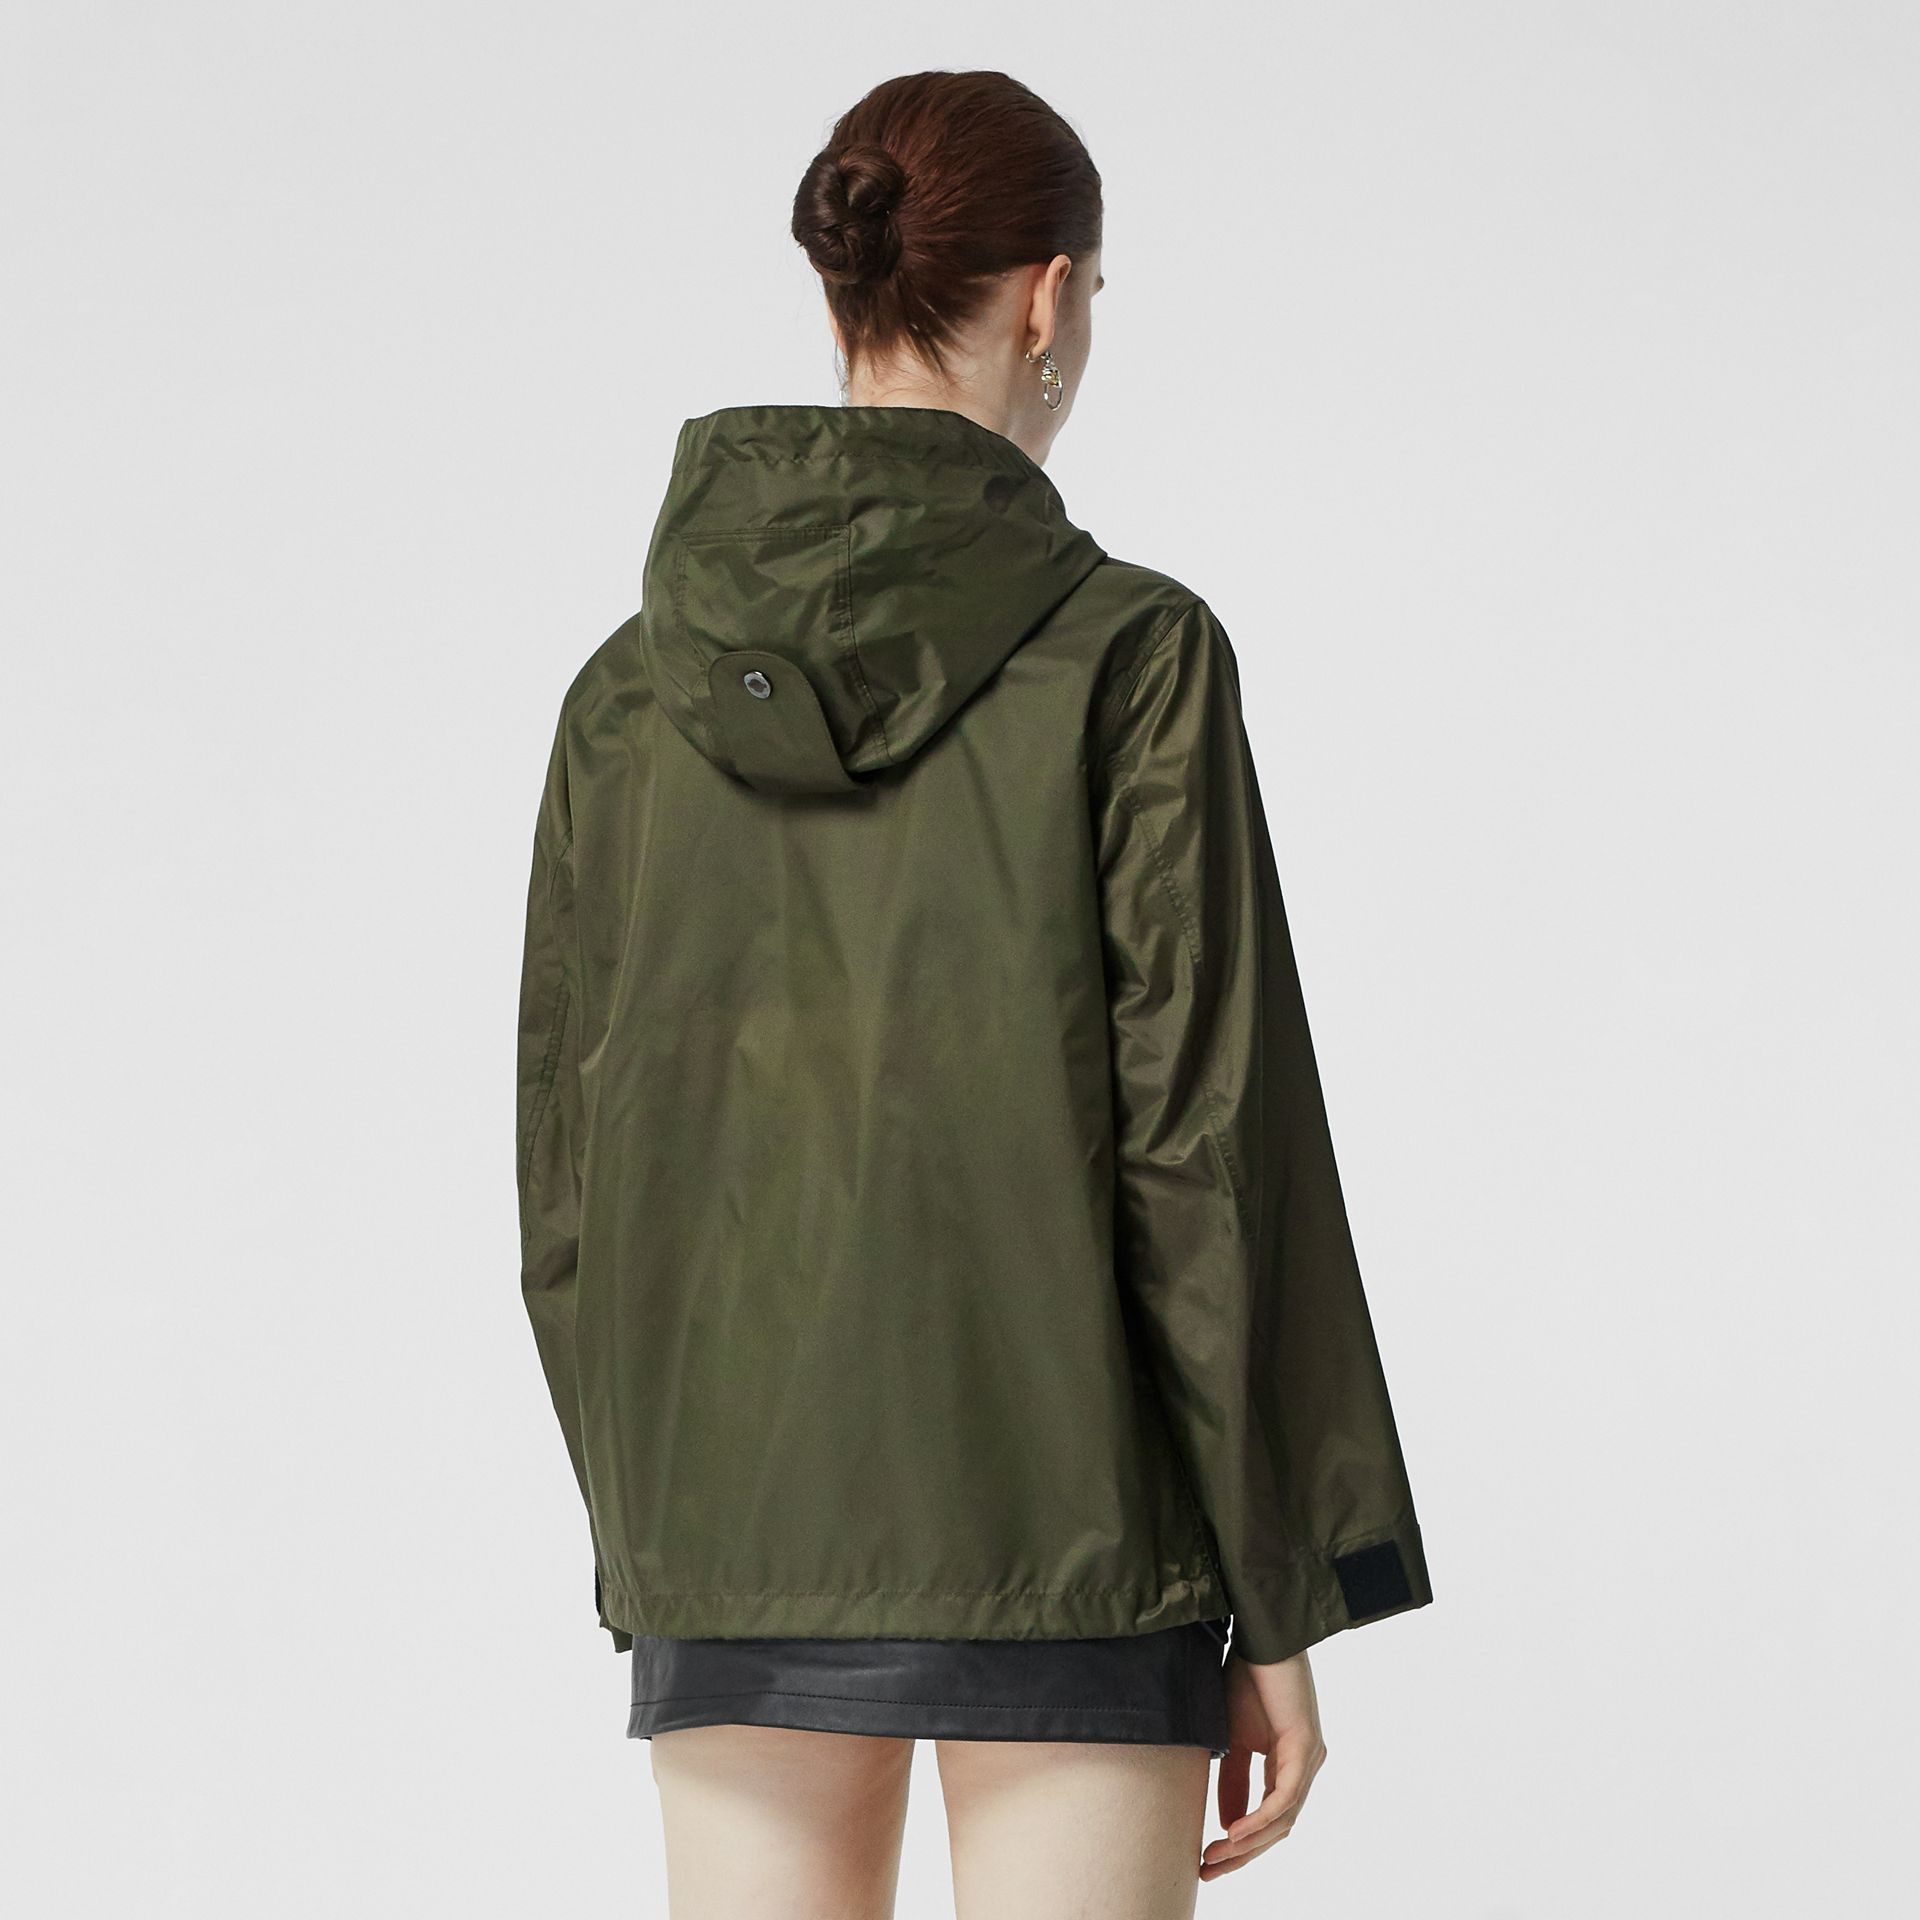 Monogram Motif Lightweight Hooded Jacket in Light Olive - Women | Burberry United States - gallery image 2